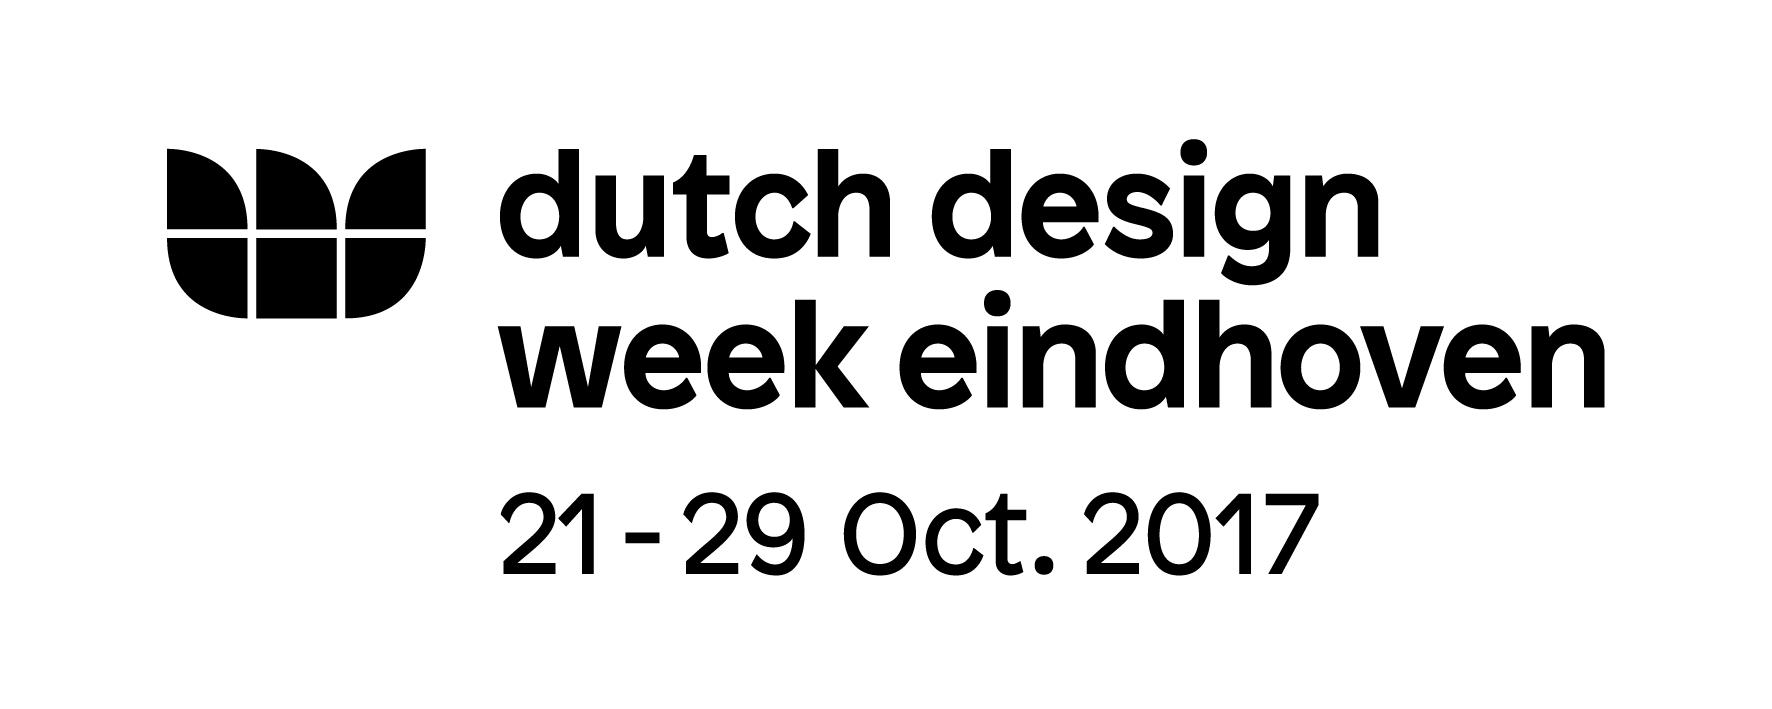 Dutch design logo